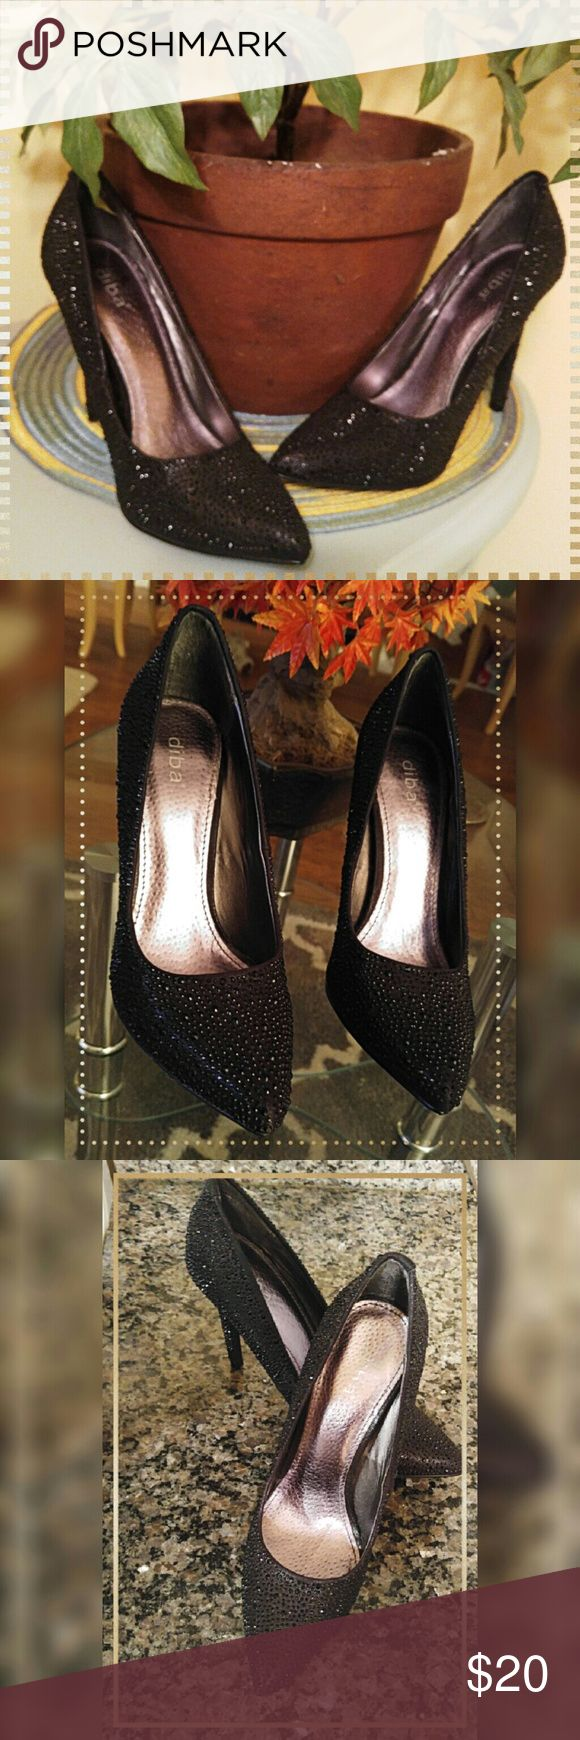 "🎉Diba Sparkly High Heels 👠 Worn once to a reunion and got many compliments. Cushioned very nicely.  No damage to be seen anywhere even on bottom. Blingy& classy! Approx 4.25"" heel❤ Diba Shoes Heels"